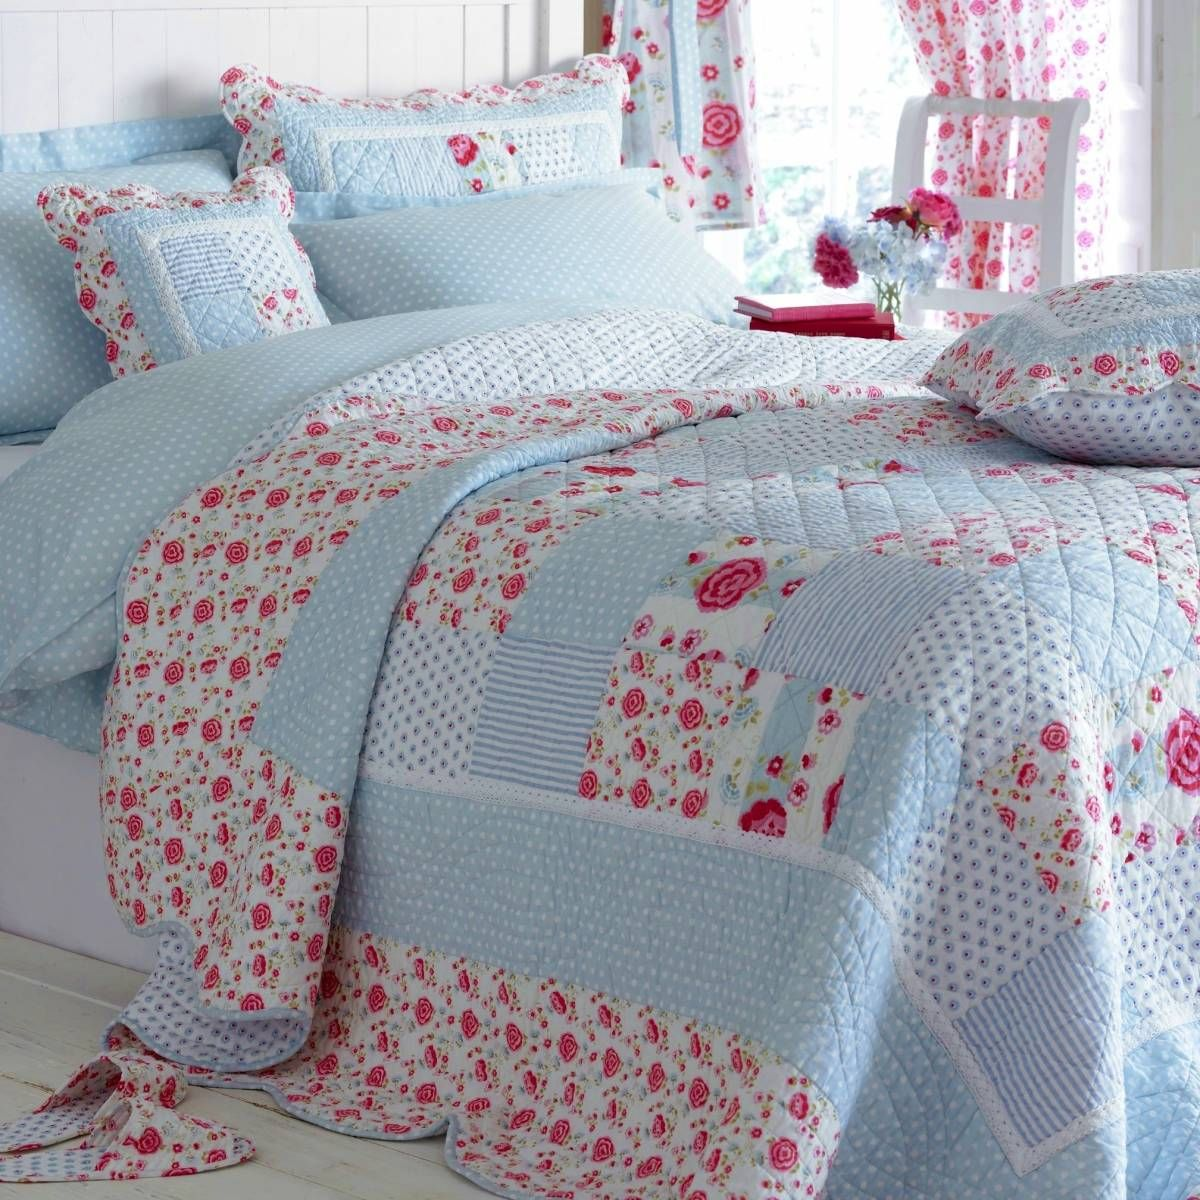 quilts | Home › Childrens › Girls Bedding › Catherine Patchwork ... : quilts for bed - Adamdwight.com